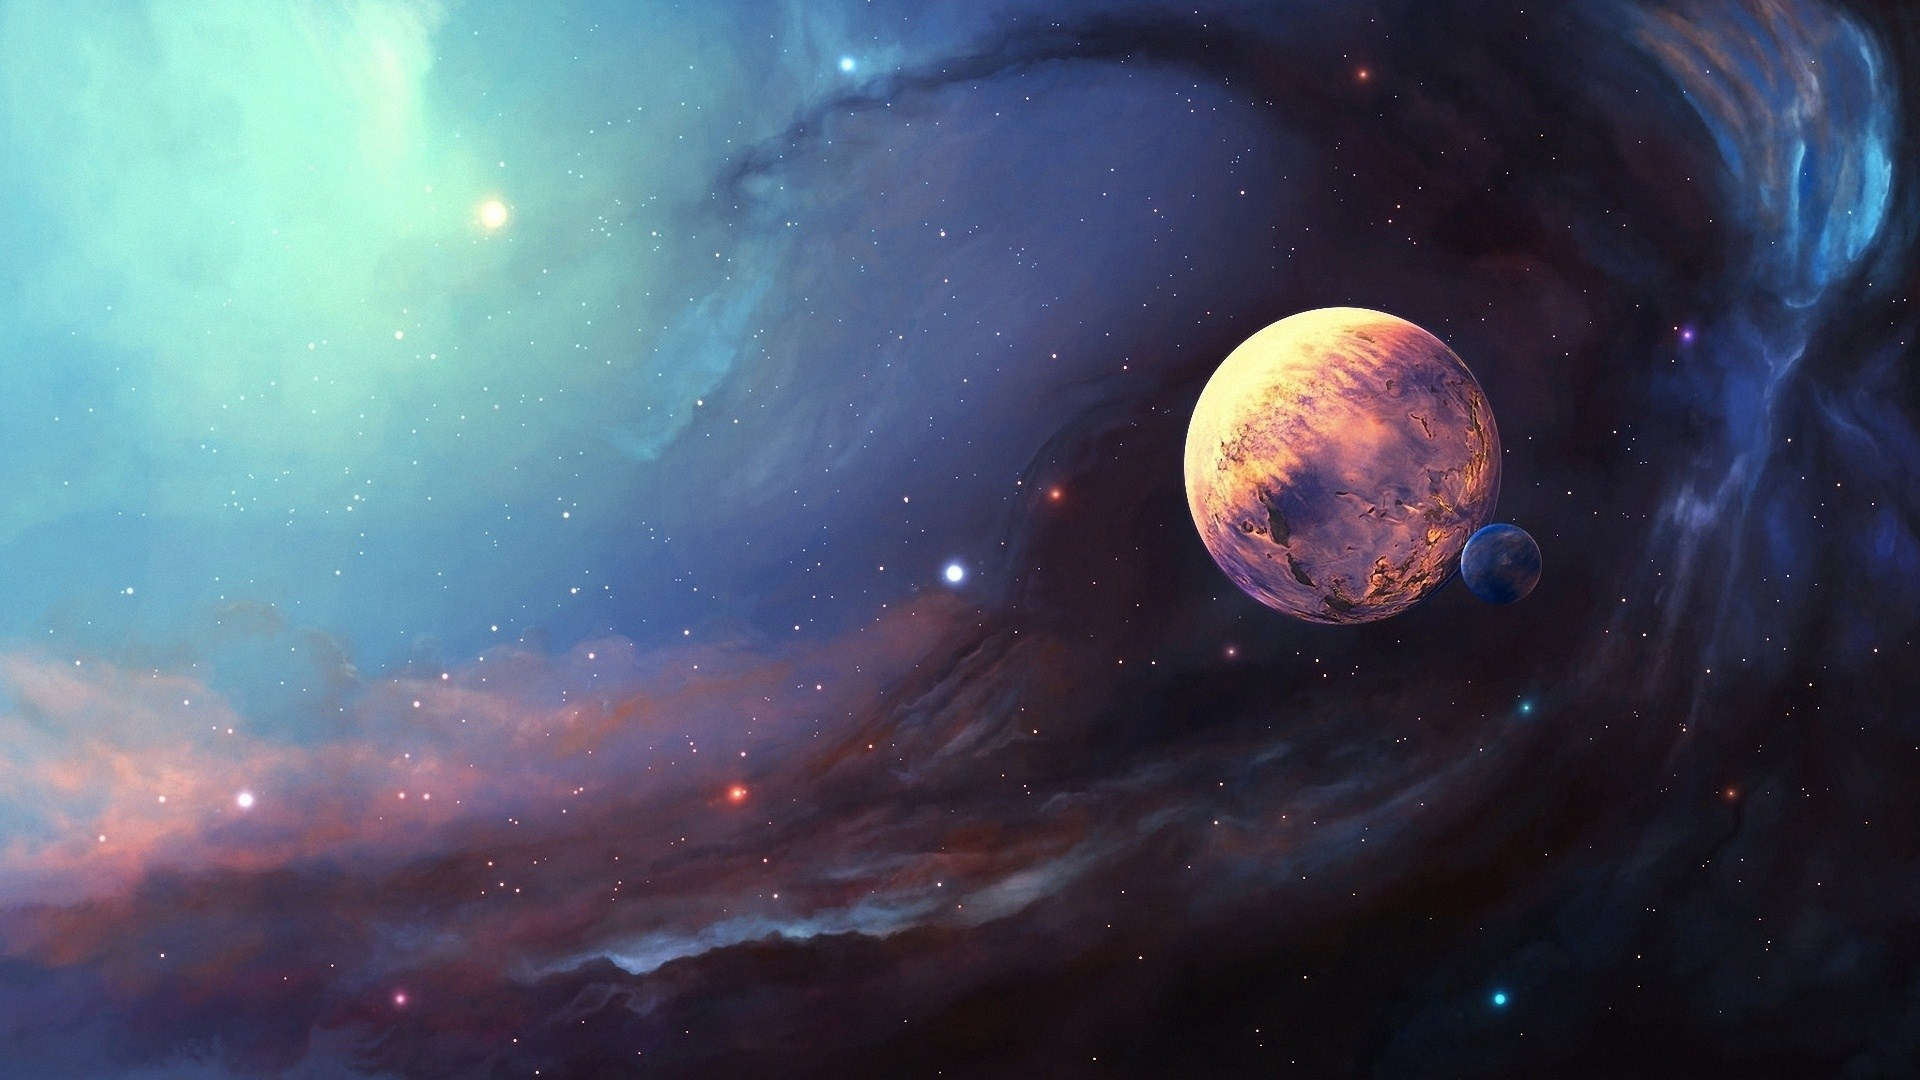 Space Nebula Planet Moon Stars Art HD Wallpaper